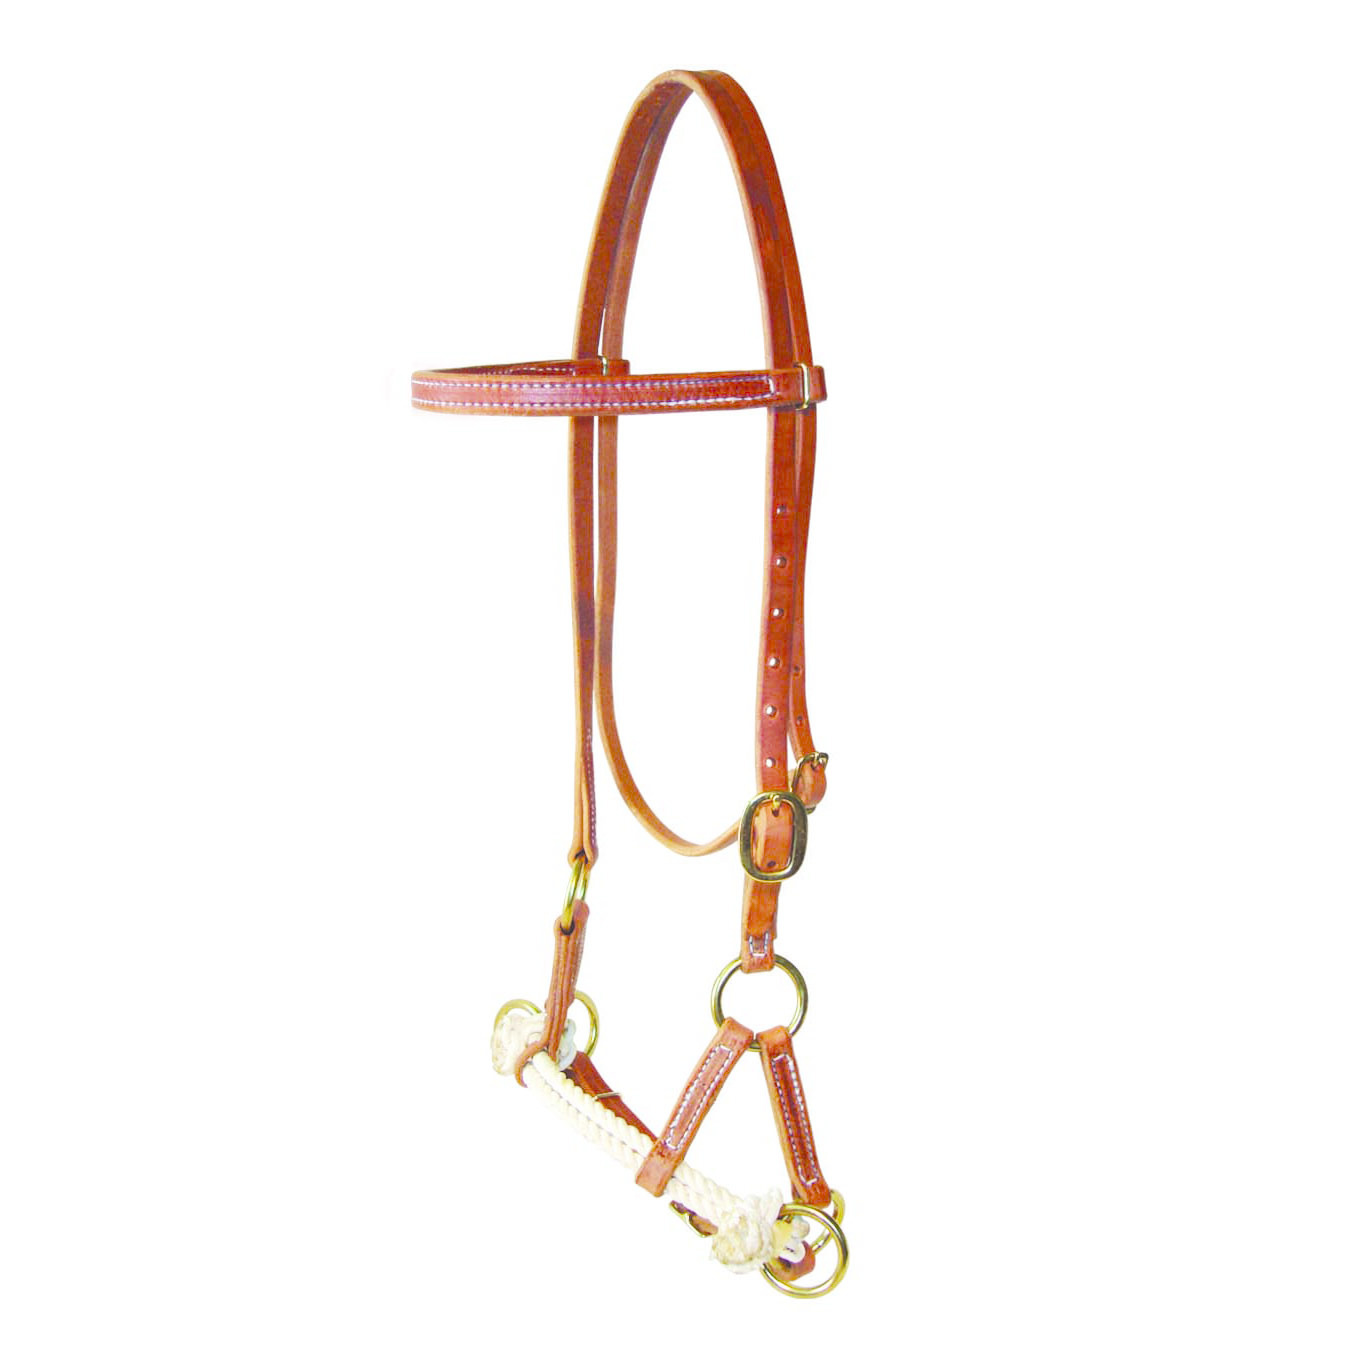 Berlin custom leather Double Rope side pull